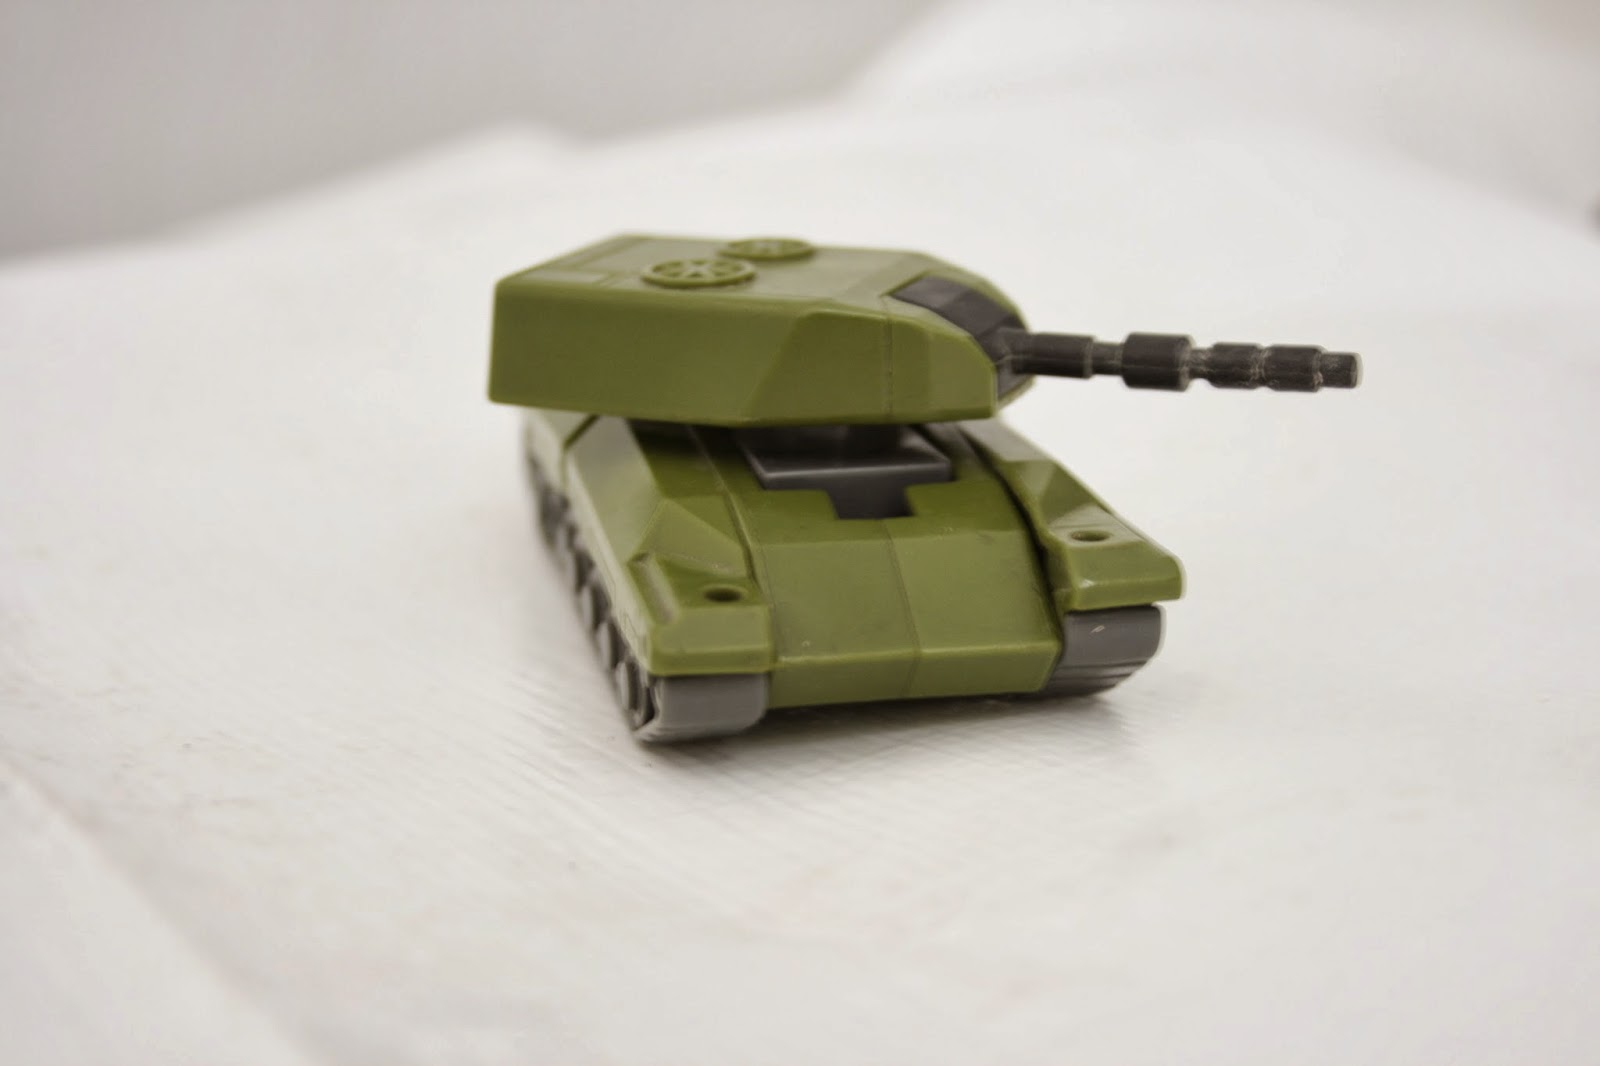 transformers 90s toy